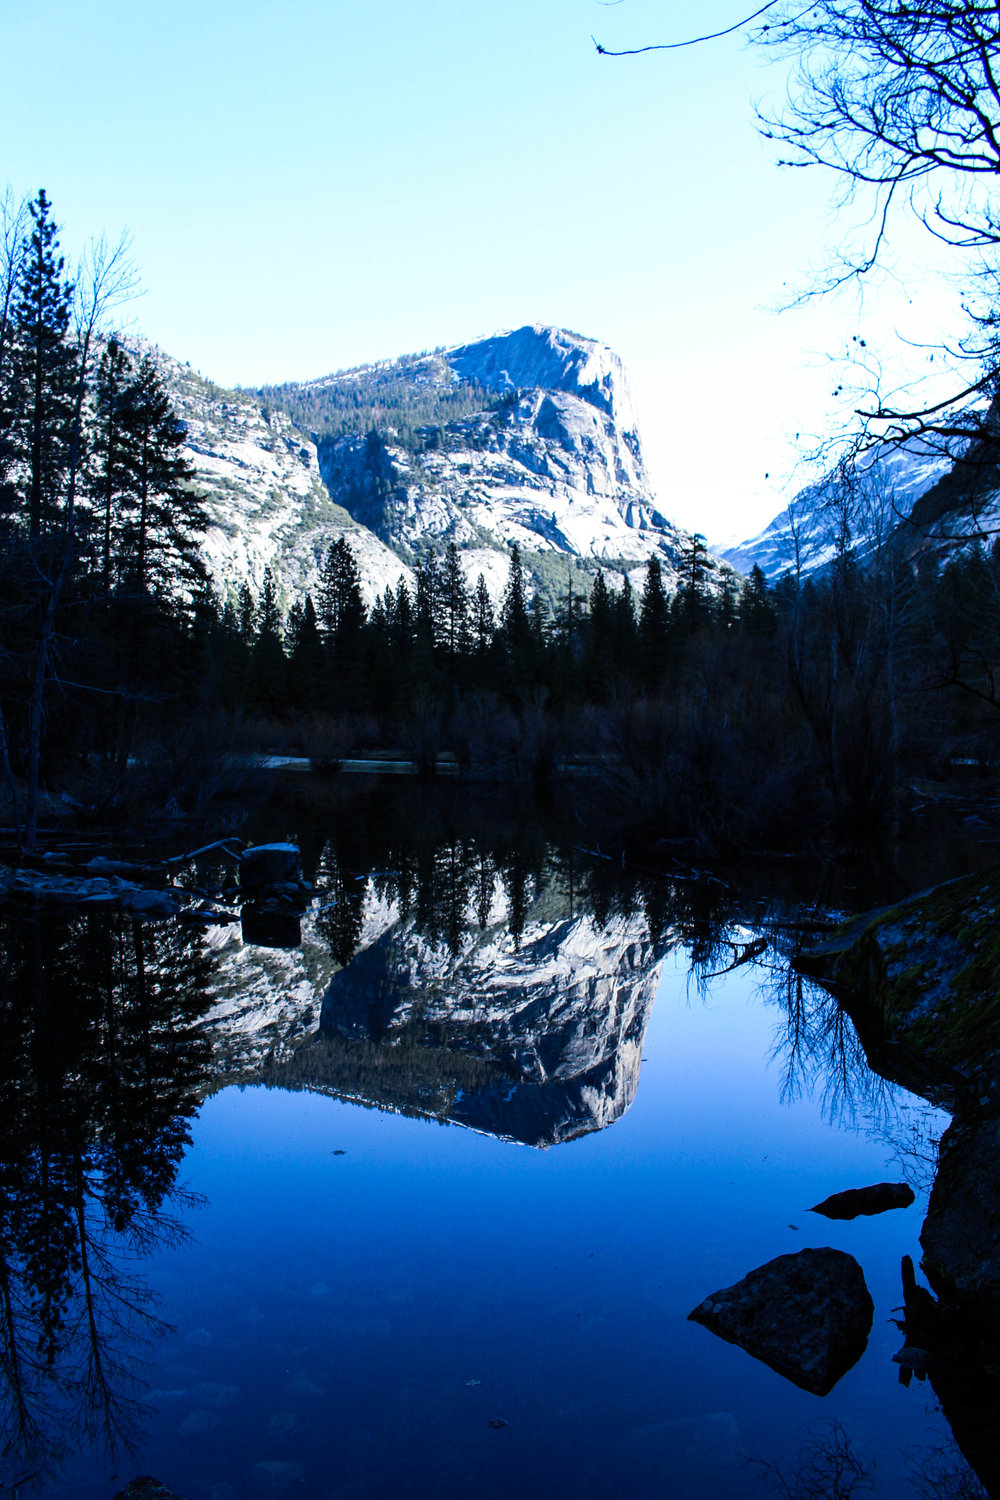 Mirror_Lake_Yosemite